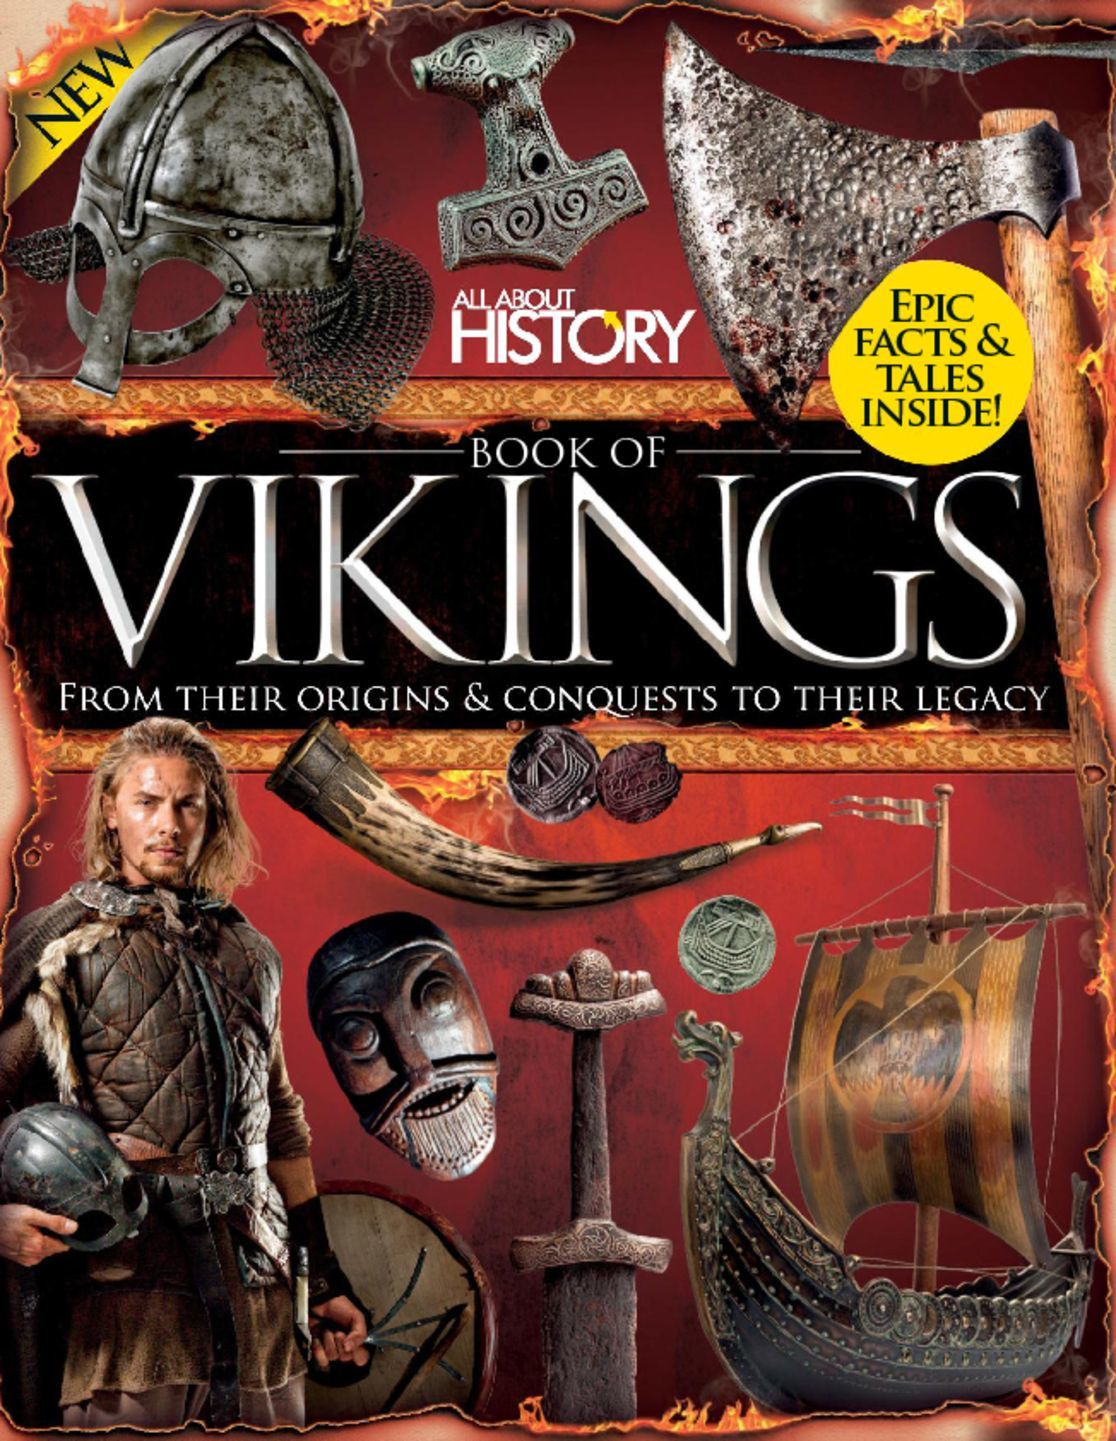 All About History Book of Vikings Digital